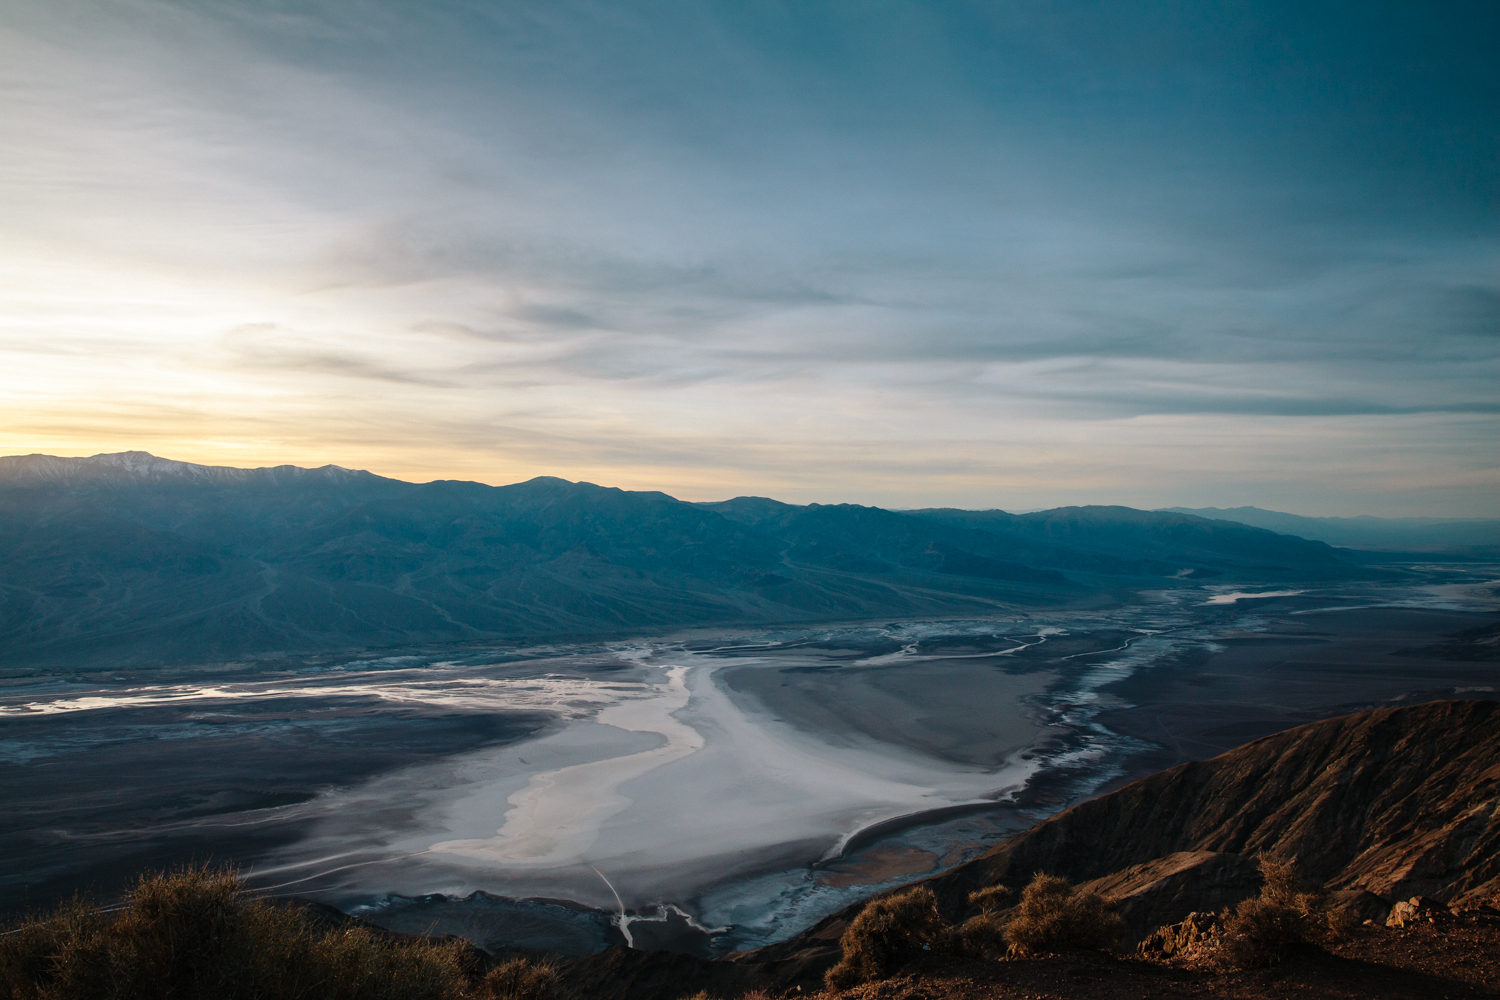 Helynn_Ospina_Travel_Death_Valley_California_01737-18.jpg